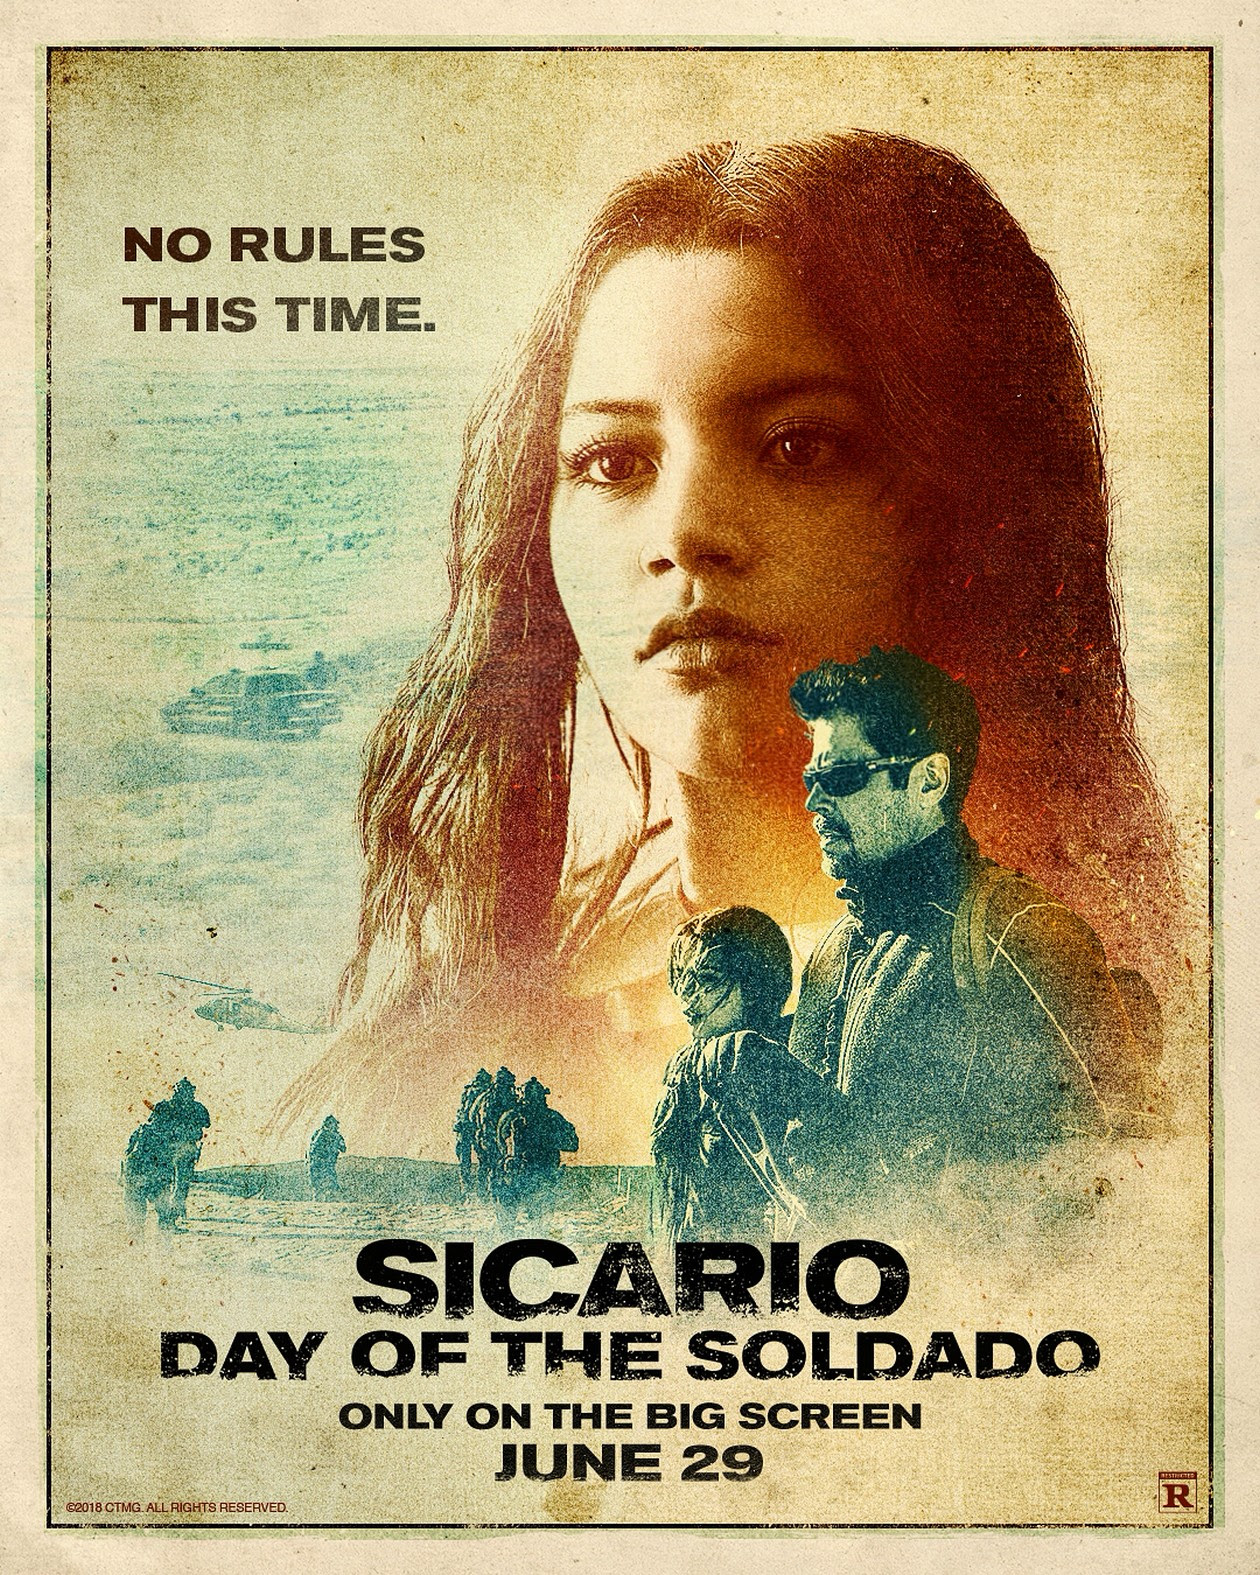 Risultati immagini per sicario day of the soldado movie poster